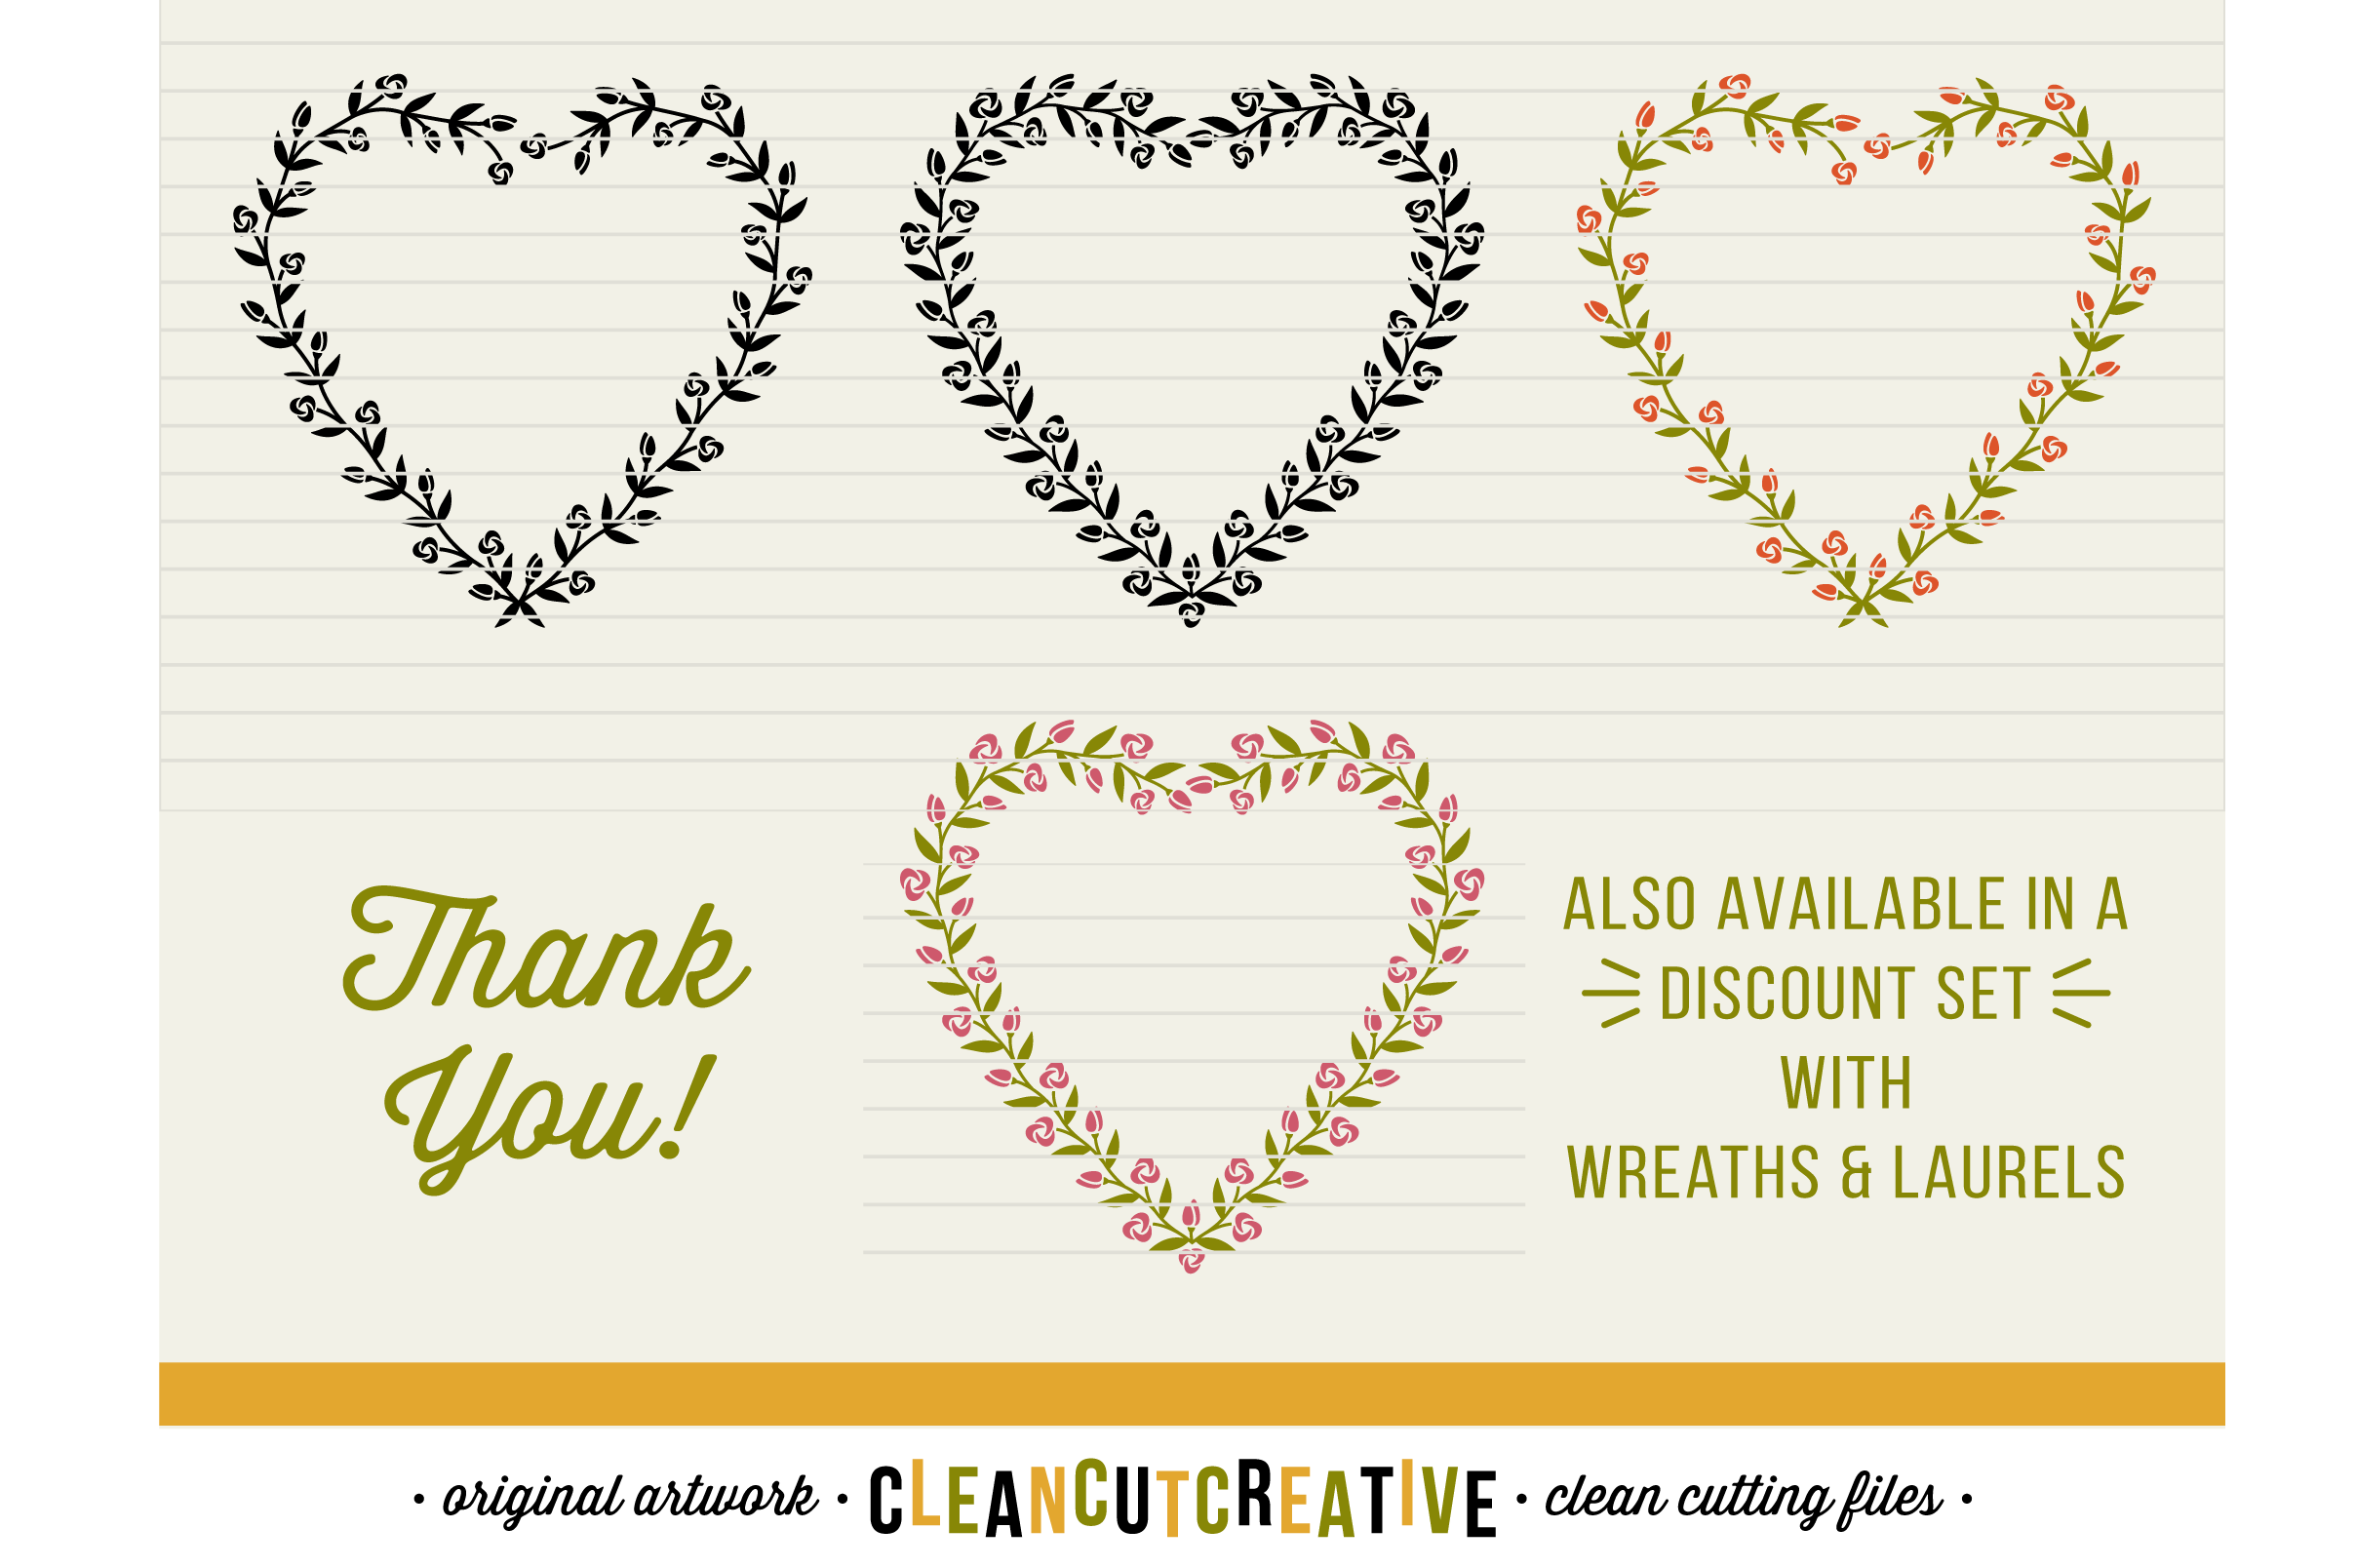 FLORAL MEGA BUNDLE 30 wreaths, laurels and hearts leaf frames - SVG DXF EPS PNG - for Cricut and Silhouette Cameo - clean cutting digital files example image 8